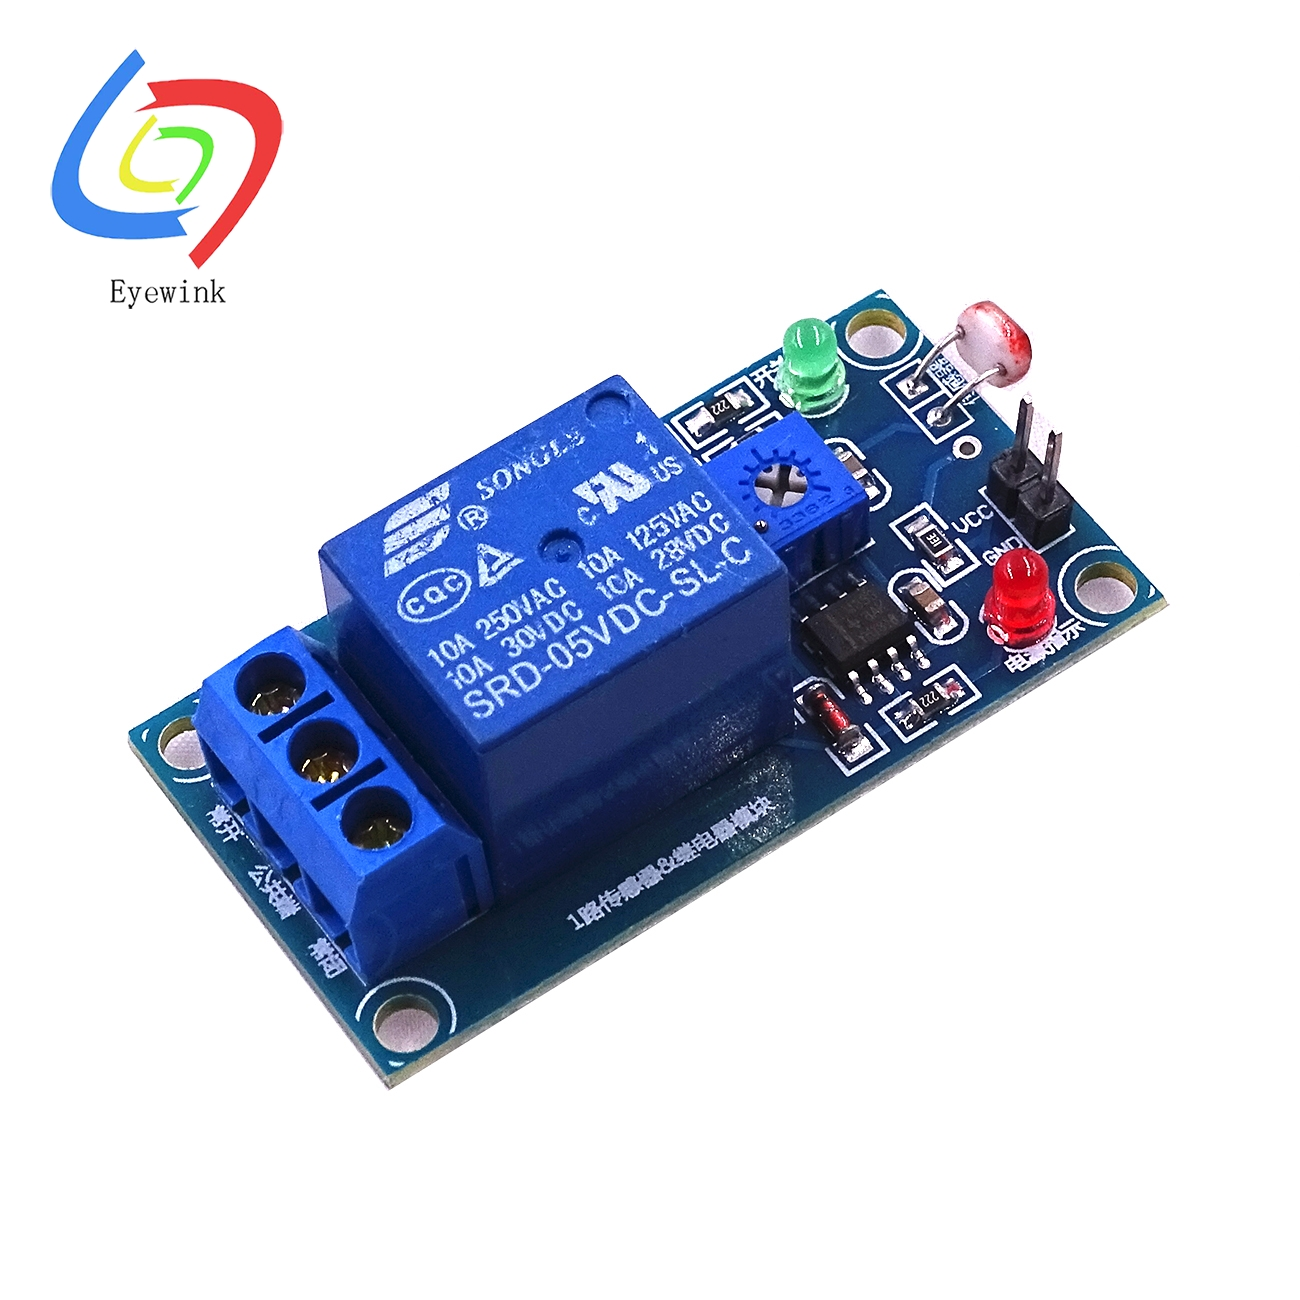 5v 12v Light Photoswitch Sensor Switch Ldr Photoresistor Relay Circuit With Module Detection Photosensitive Board In Integrated Circuits From Electronic